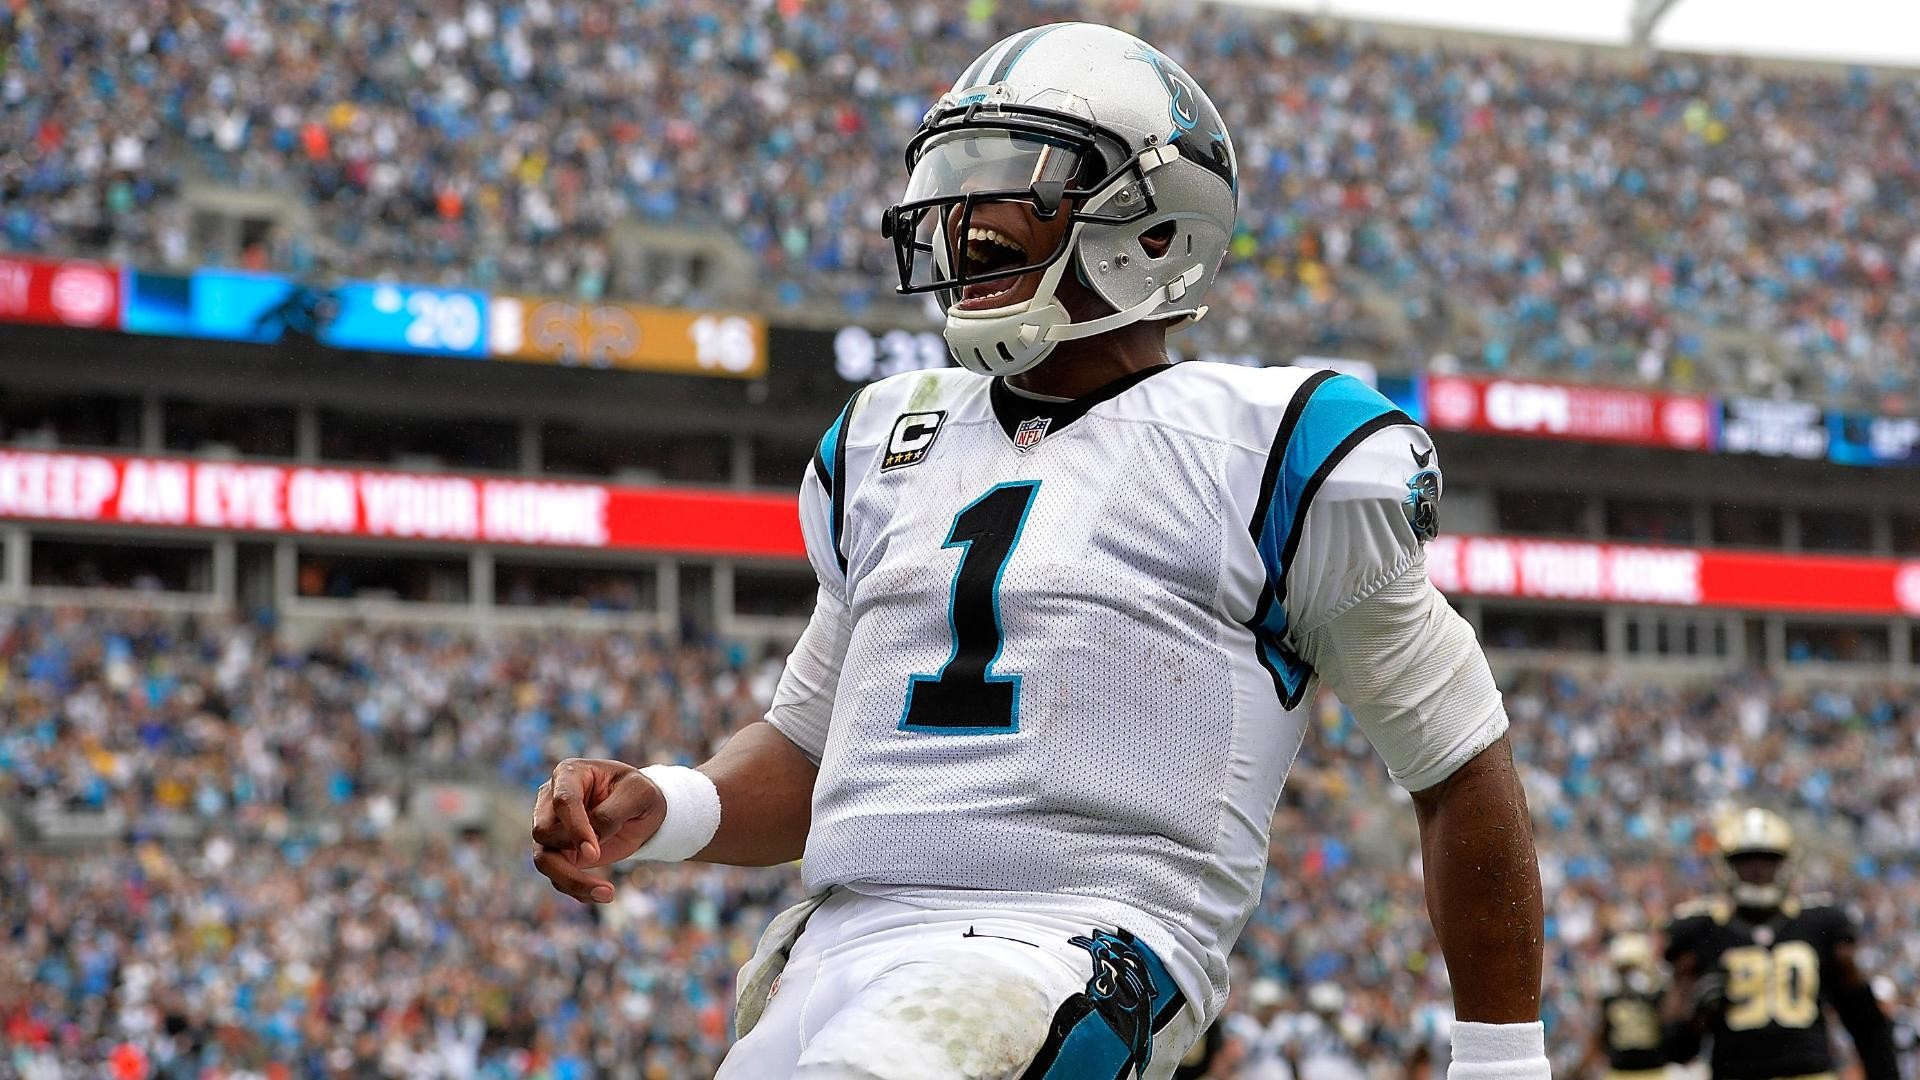 Skip, Stephen A. side with Cam Newton